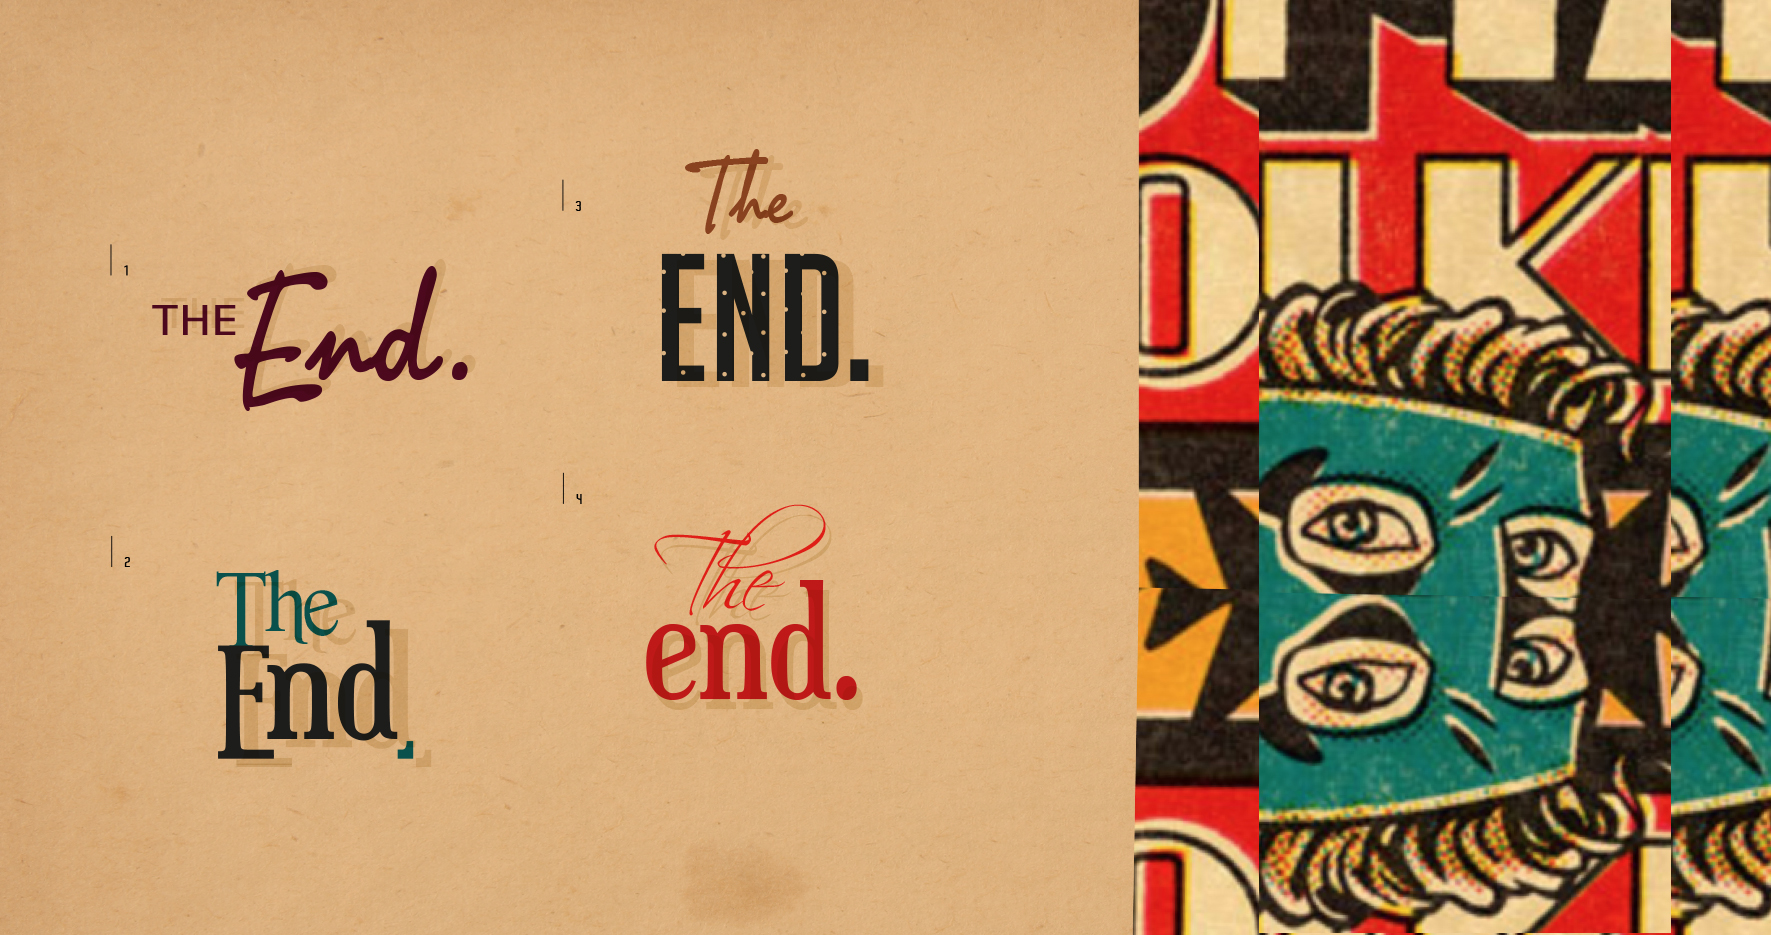 the end3